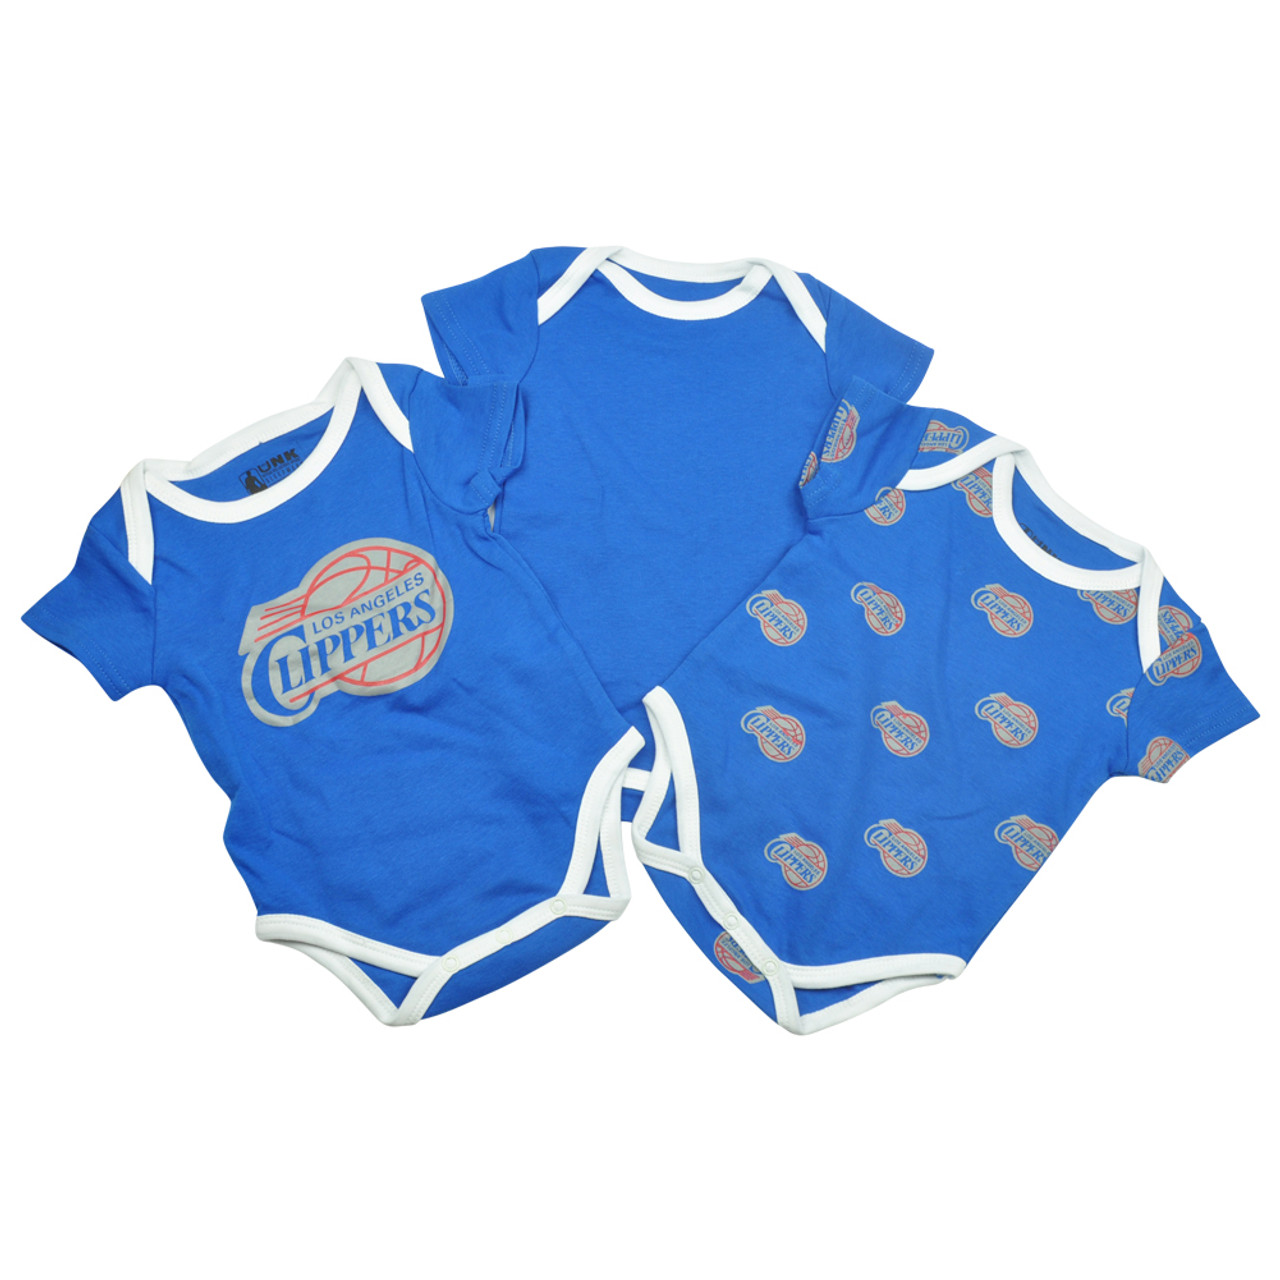 163cb923a8b NBA UNK Los Angeles Clippers Baby Infant 3 Piece Creeper Set Bodysuit - Cap  Store Online.com